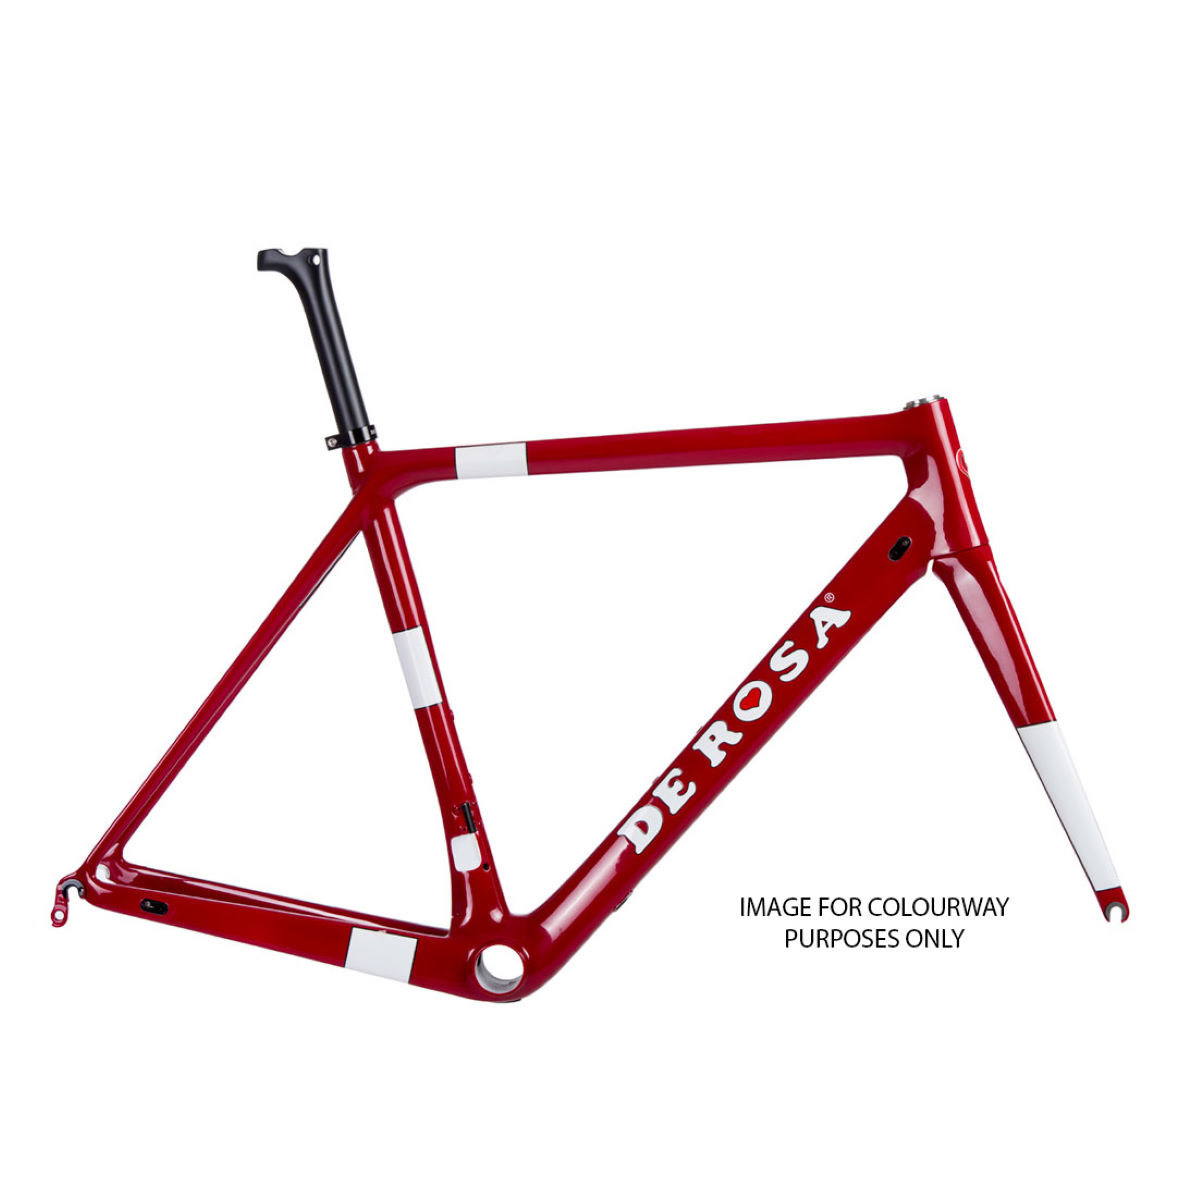 Vélo de route De Rosa King XS (Super Record EPS, 2017) - 49cm Stock Bike Rouge/Blanc Vélos de route